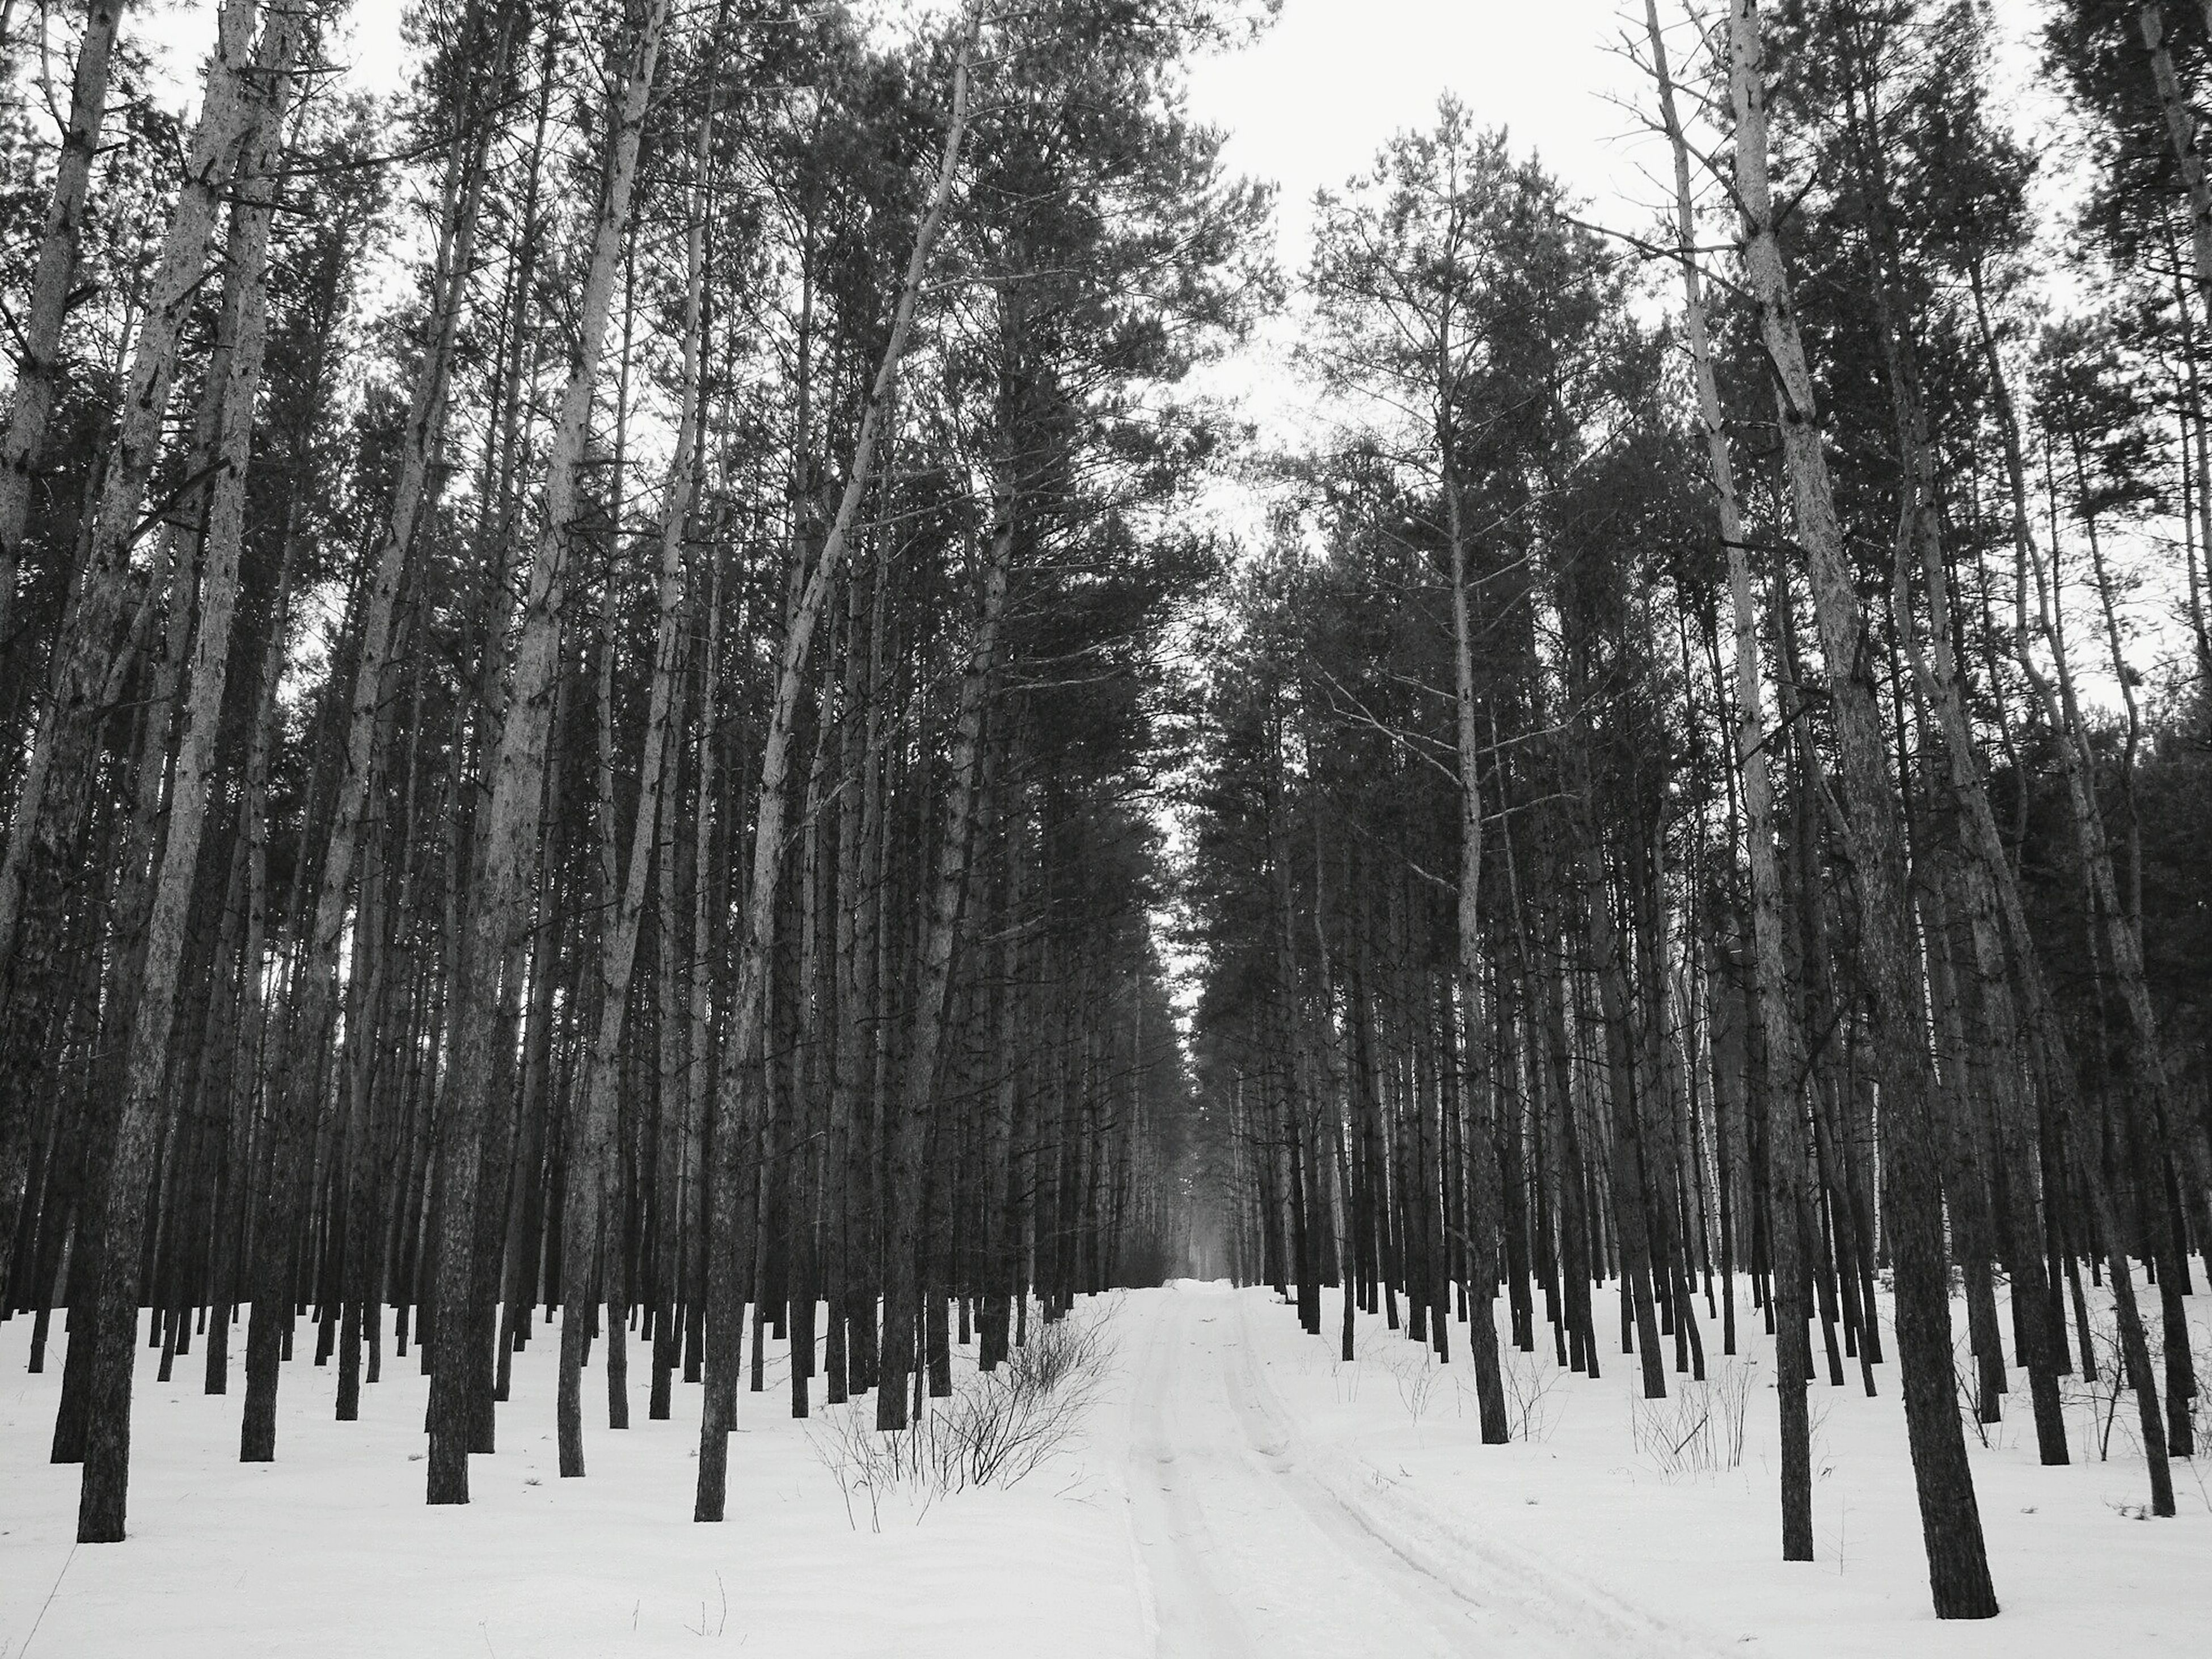 tree, the way forward, snow, diminishing perspective, winter, cold temperature, vanishing point, tranquility, treelined, forest, nature, tree trunk, tranquil scene, woodland, season, road, transportation, beauty in nature, growth, in a row